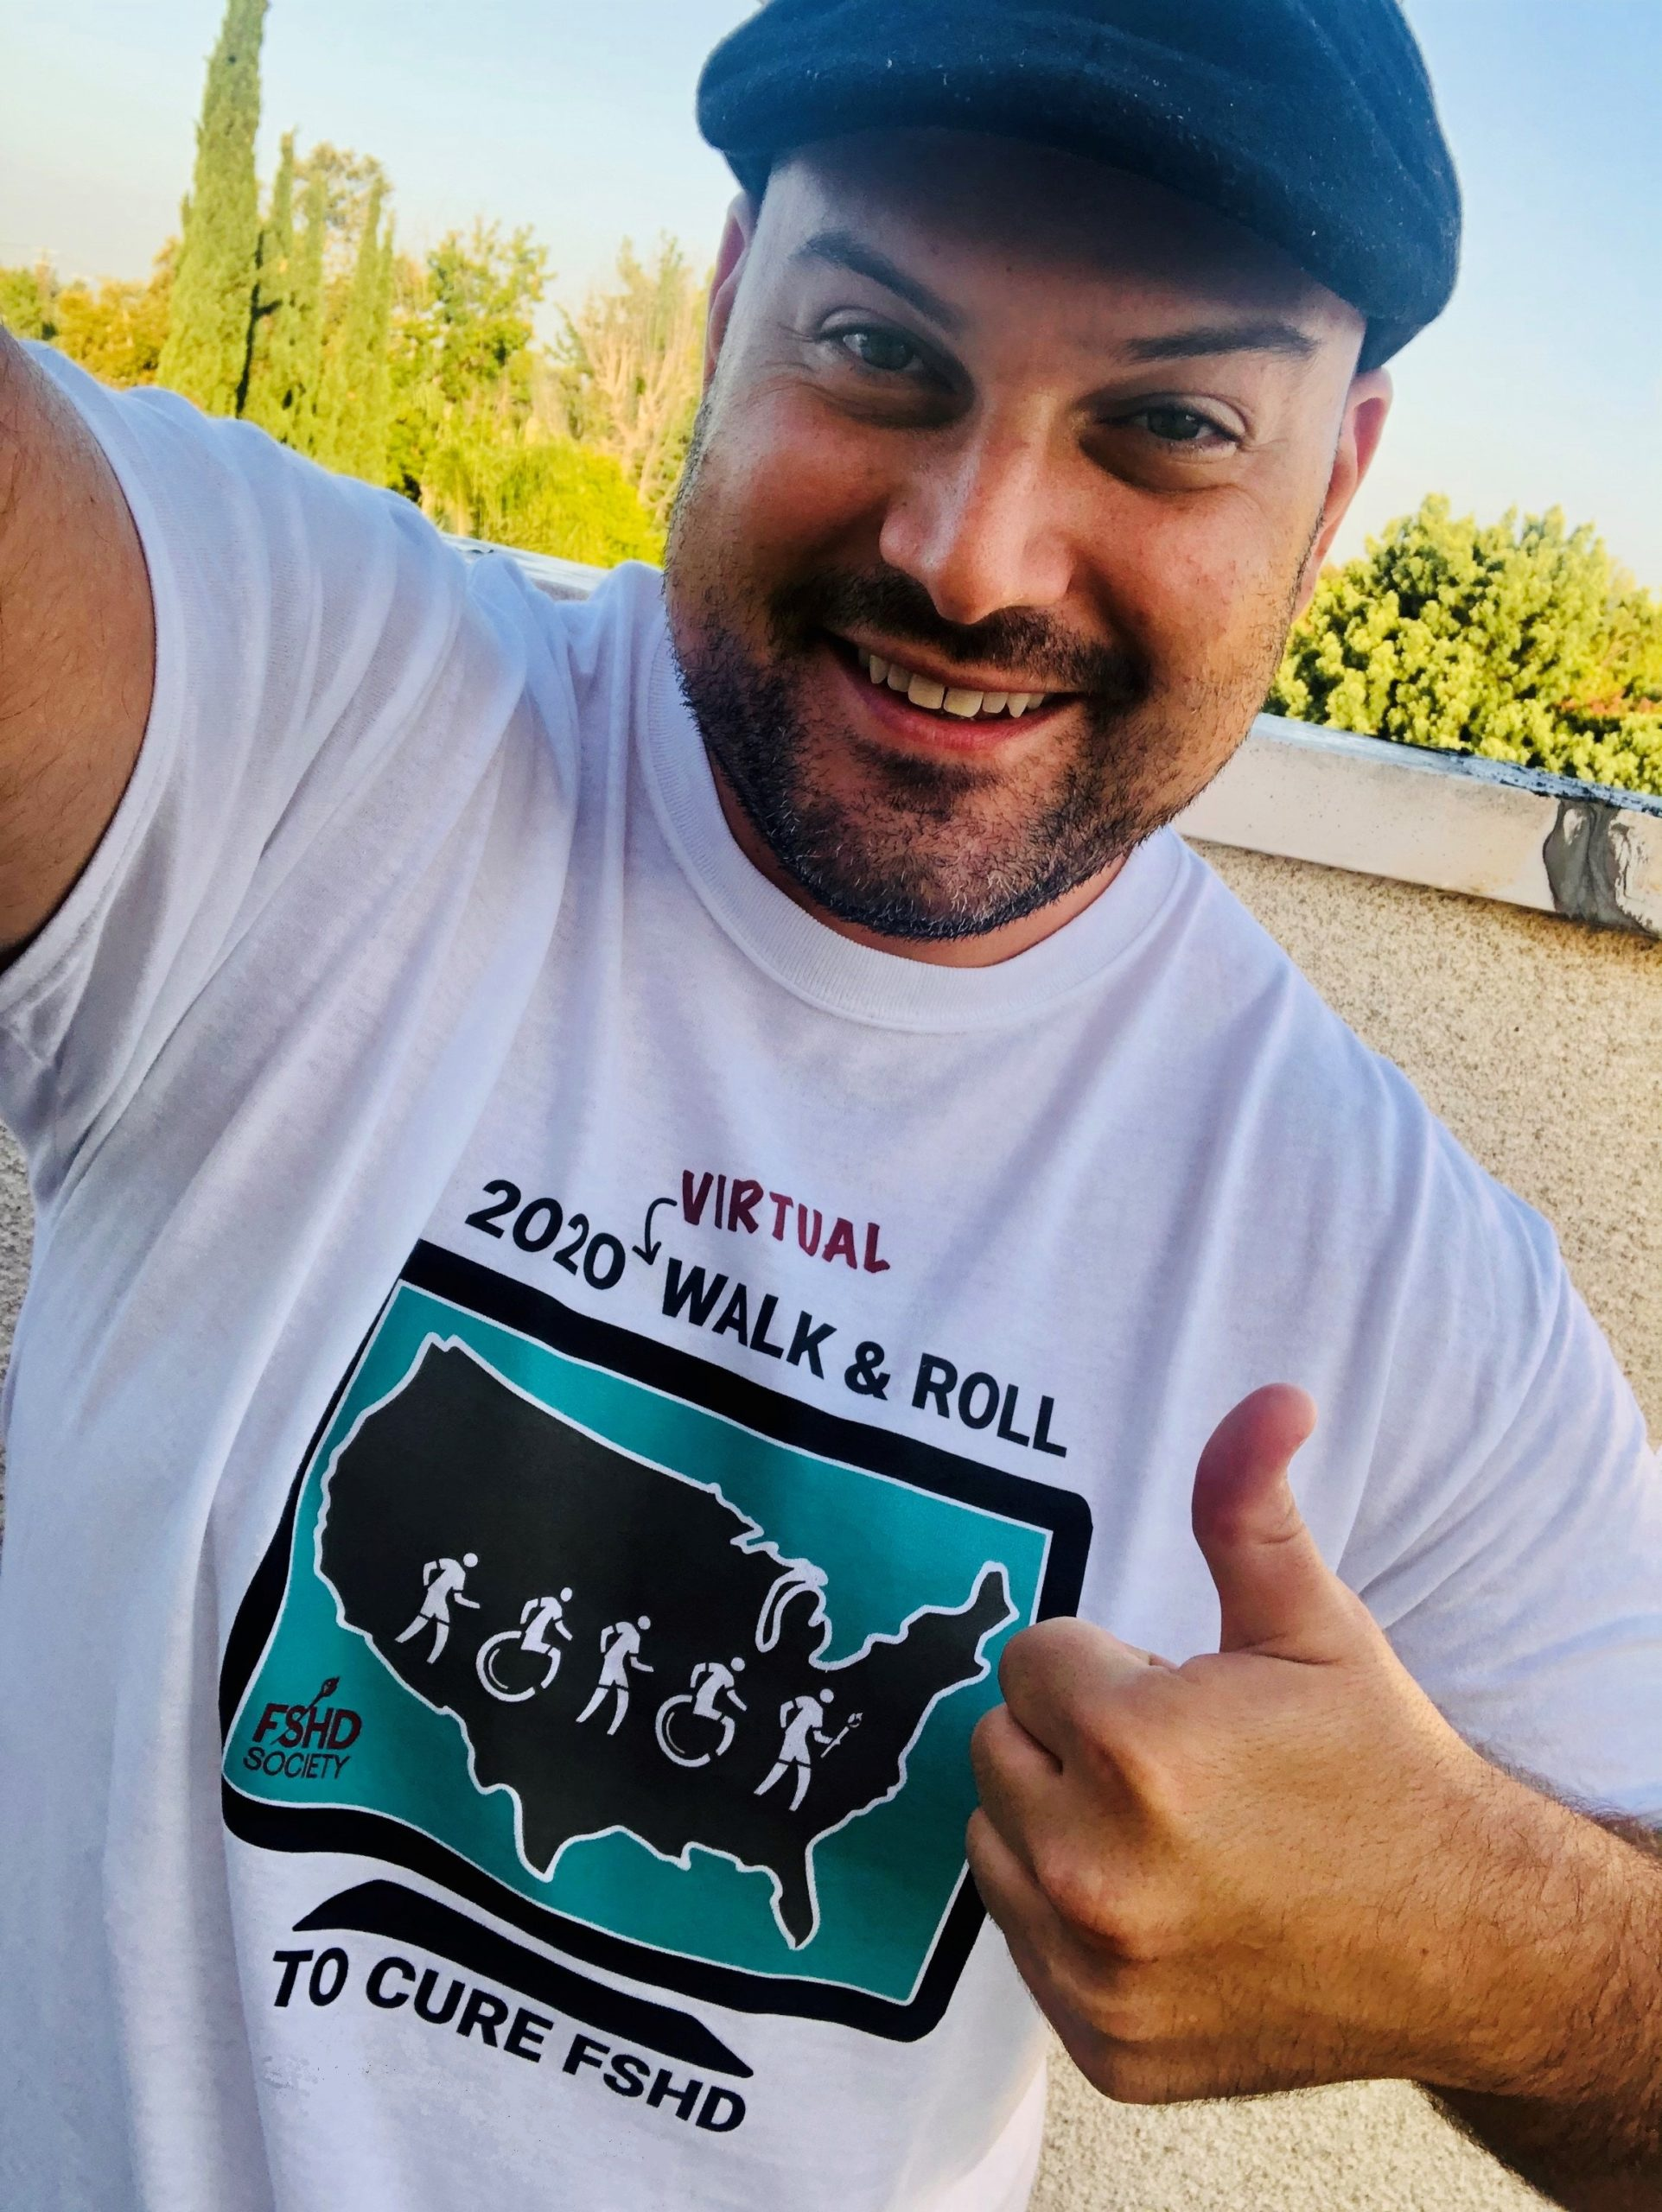 Max Adler, Walk & Roll National Ambassador